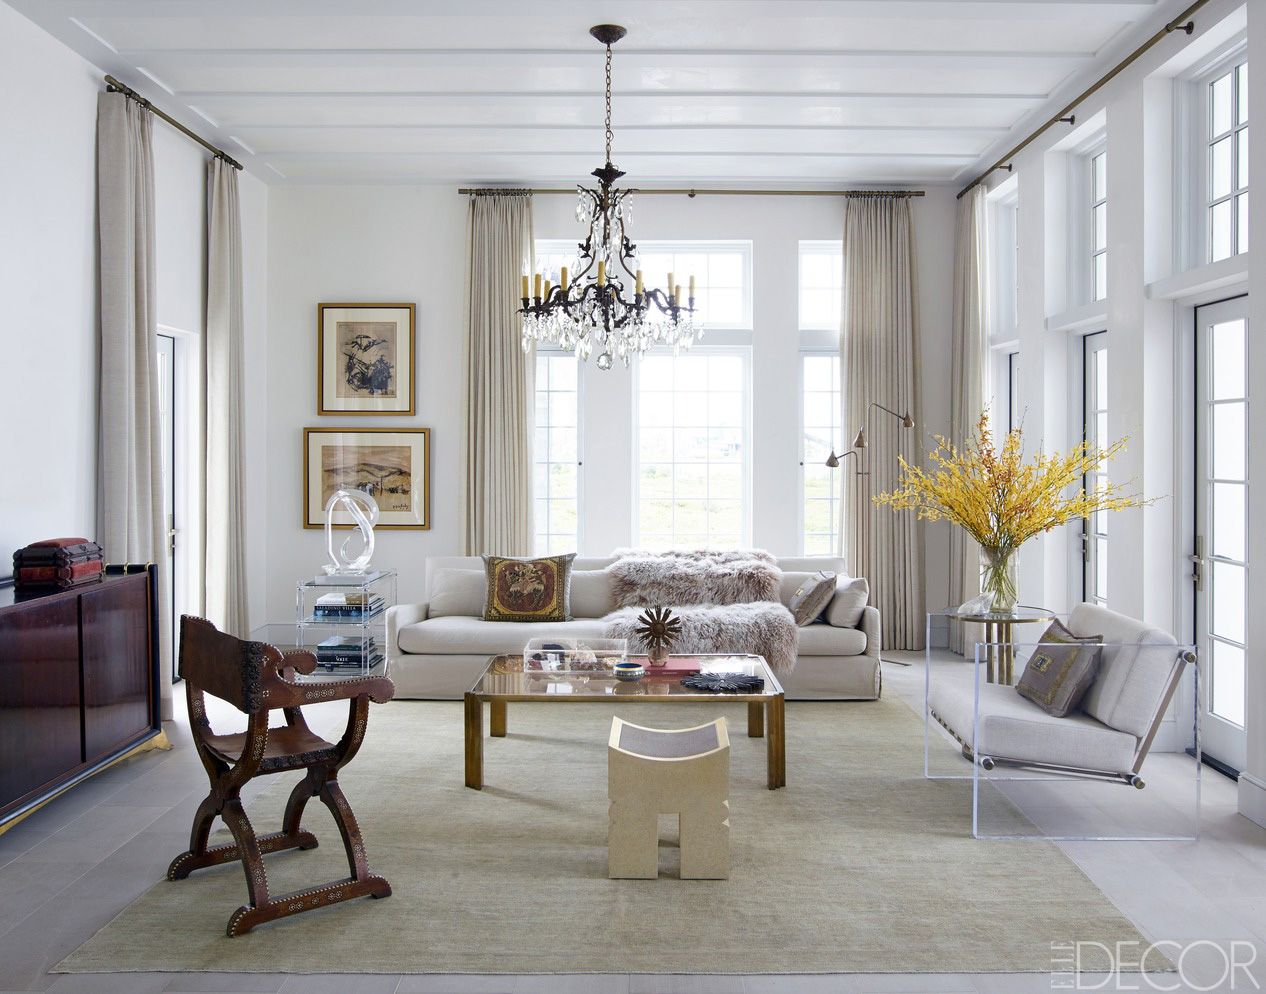 Chic Living Room Decorating Ideas and Design - ELLE DECOR on Pictures For Room Decor  id=86837